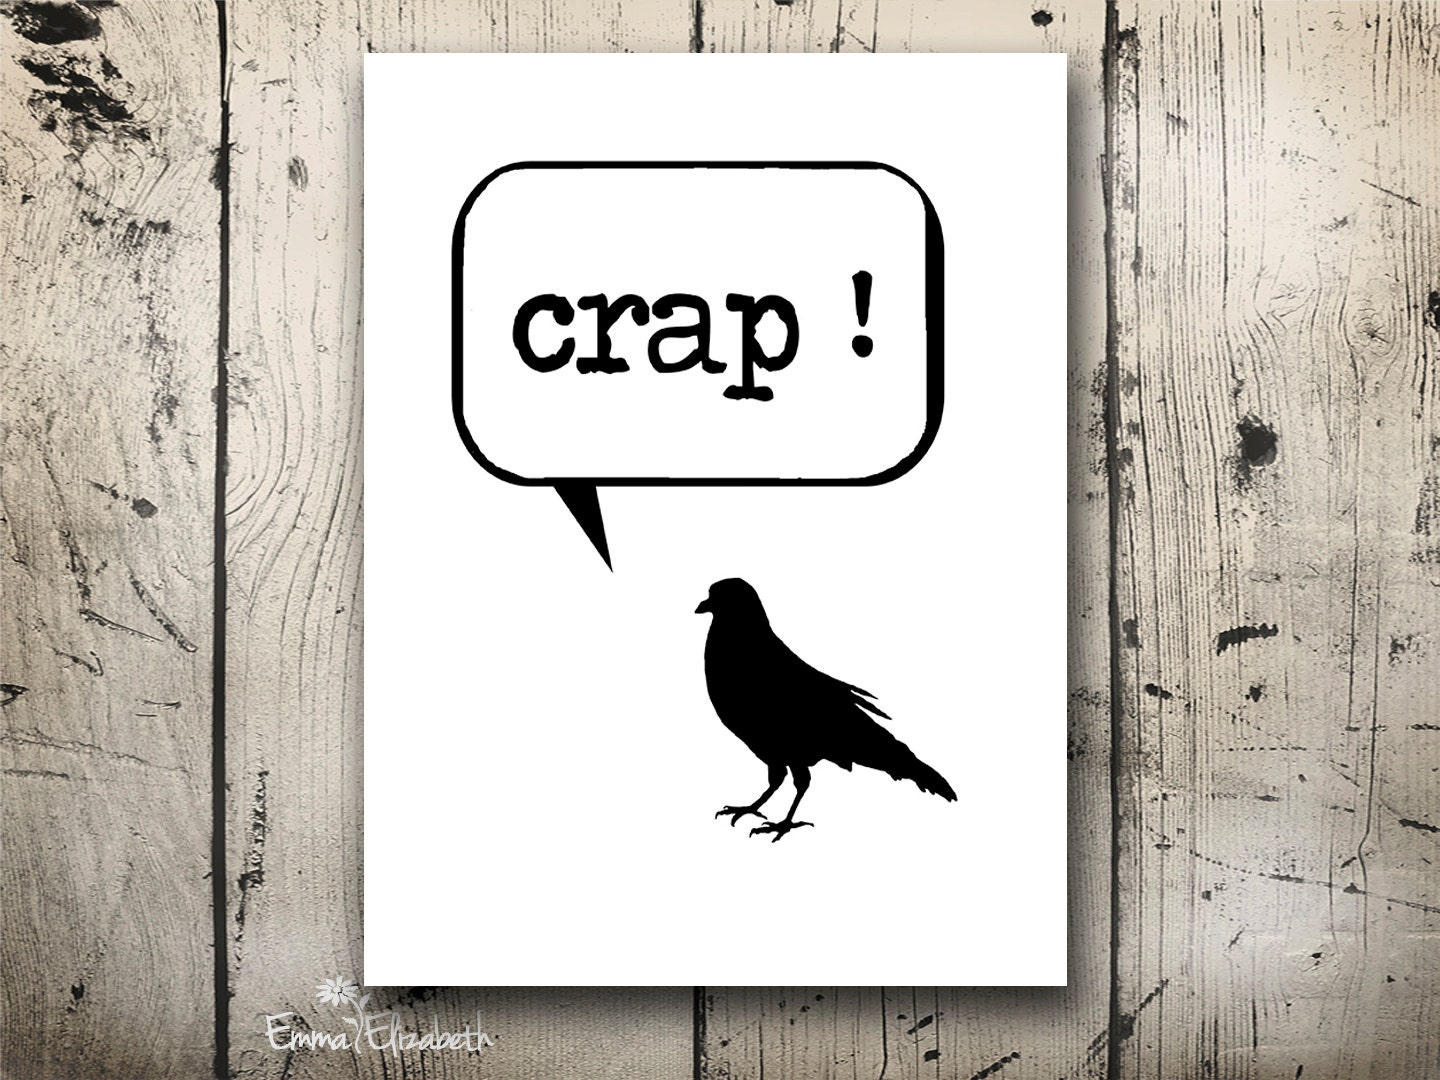 Art print crap funny quote bubble wall hanging black bird bad day